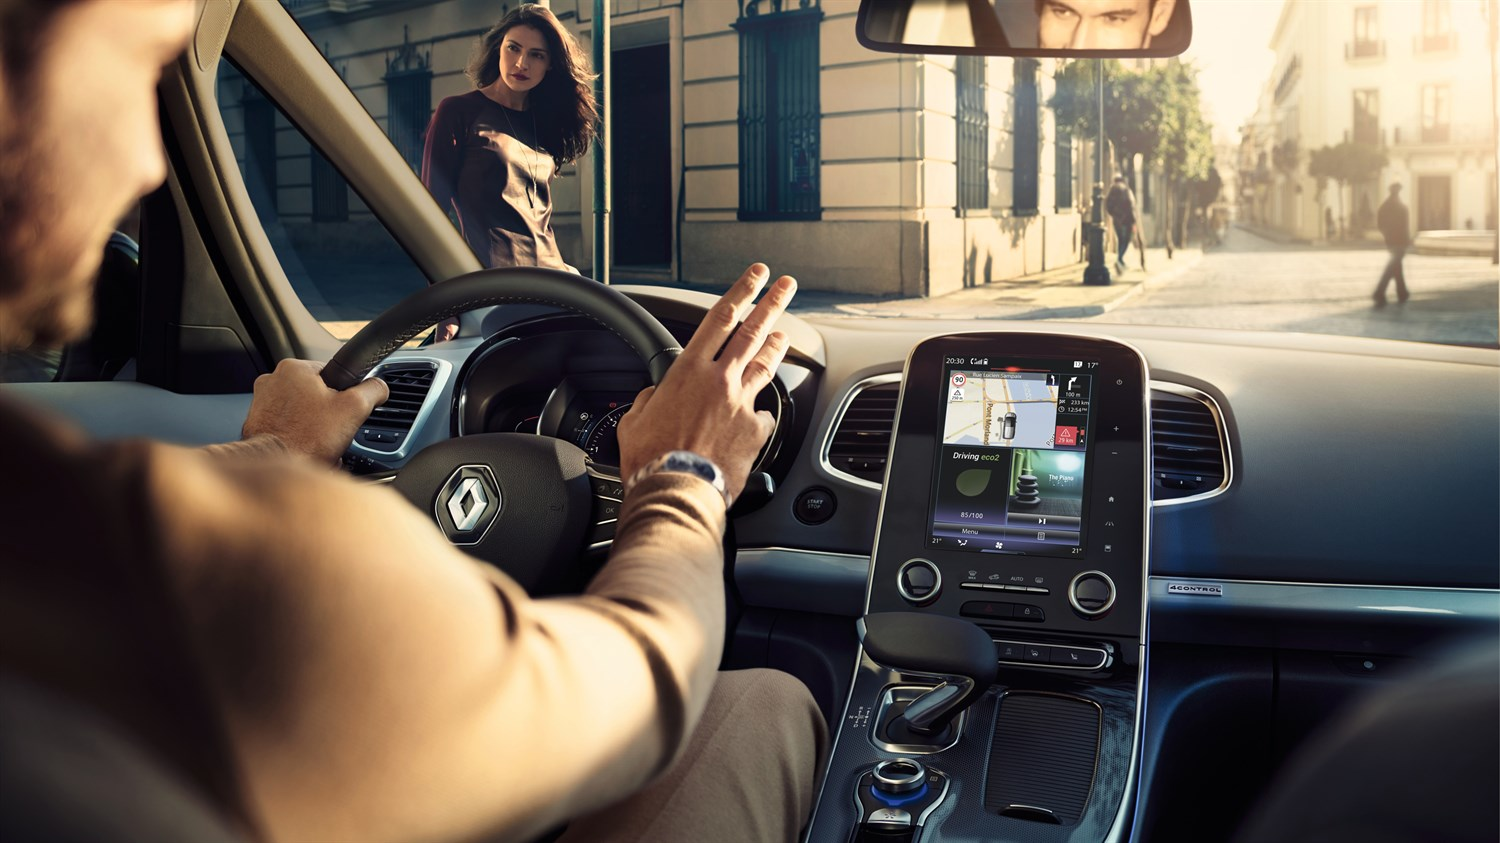 Renault onboard multimedia system""